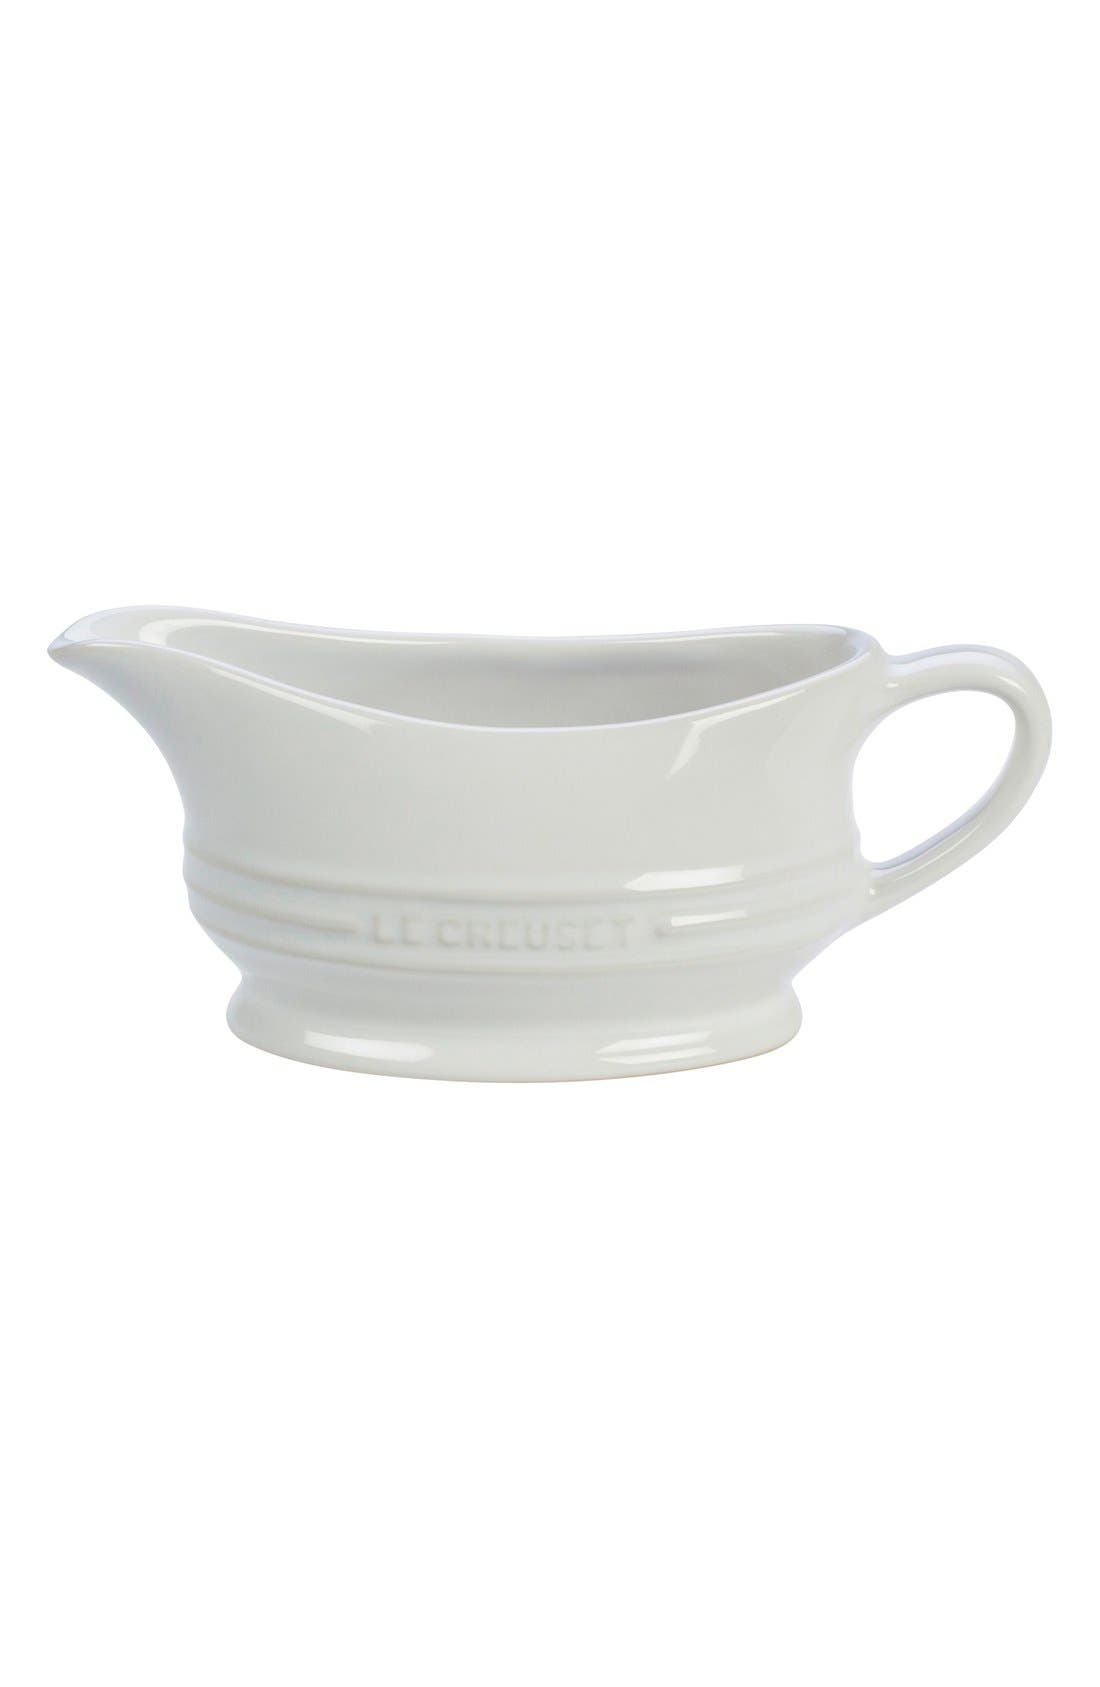 Stoneware Gravy Boat,                         Main,                         color, WHITE